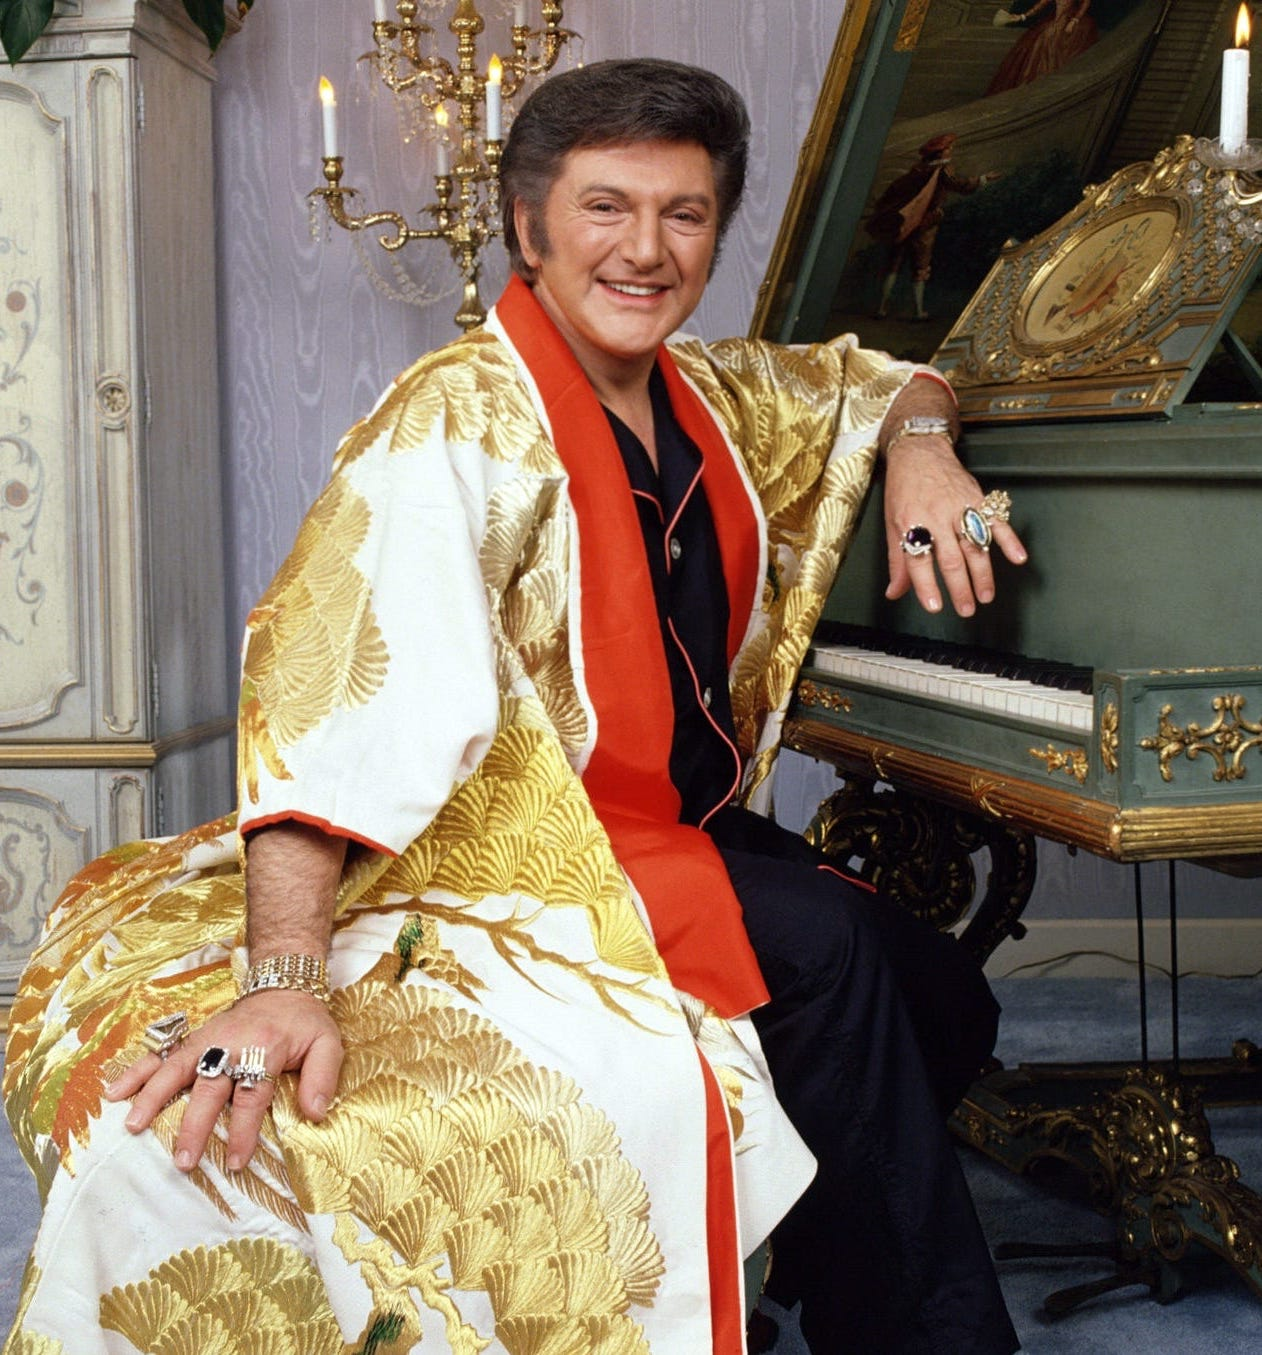 1369531587000 TDS Liberace CP robe 1305252127 16 9 Unexplainable Things That Happened On Movie Sets